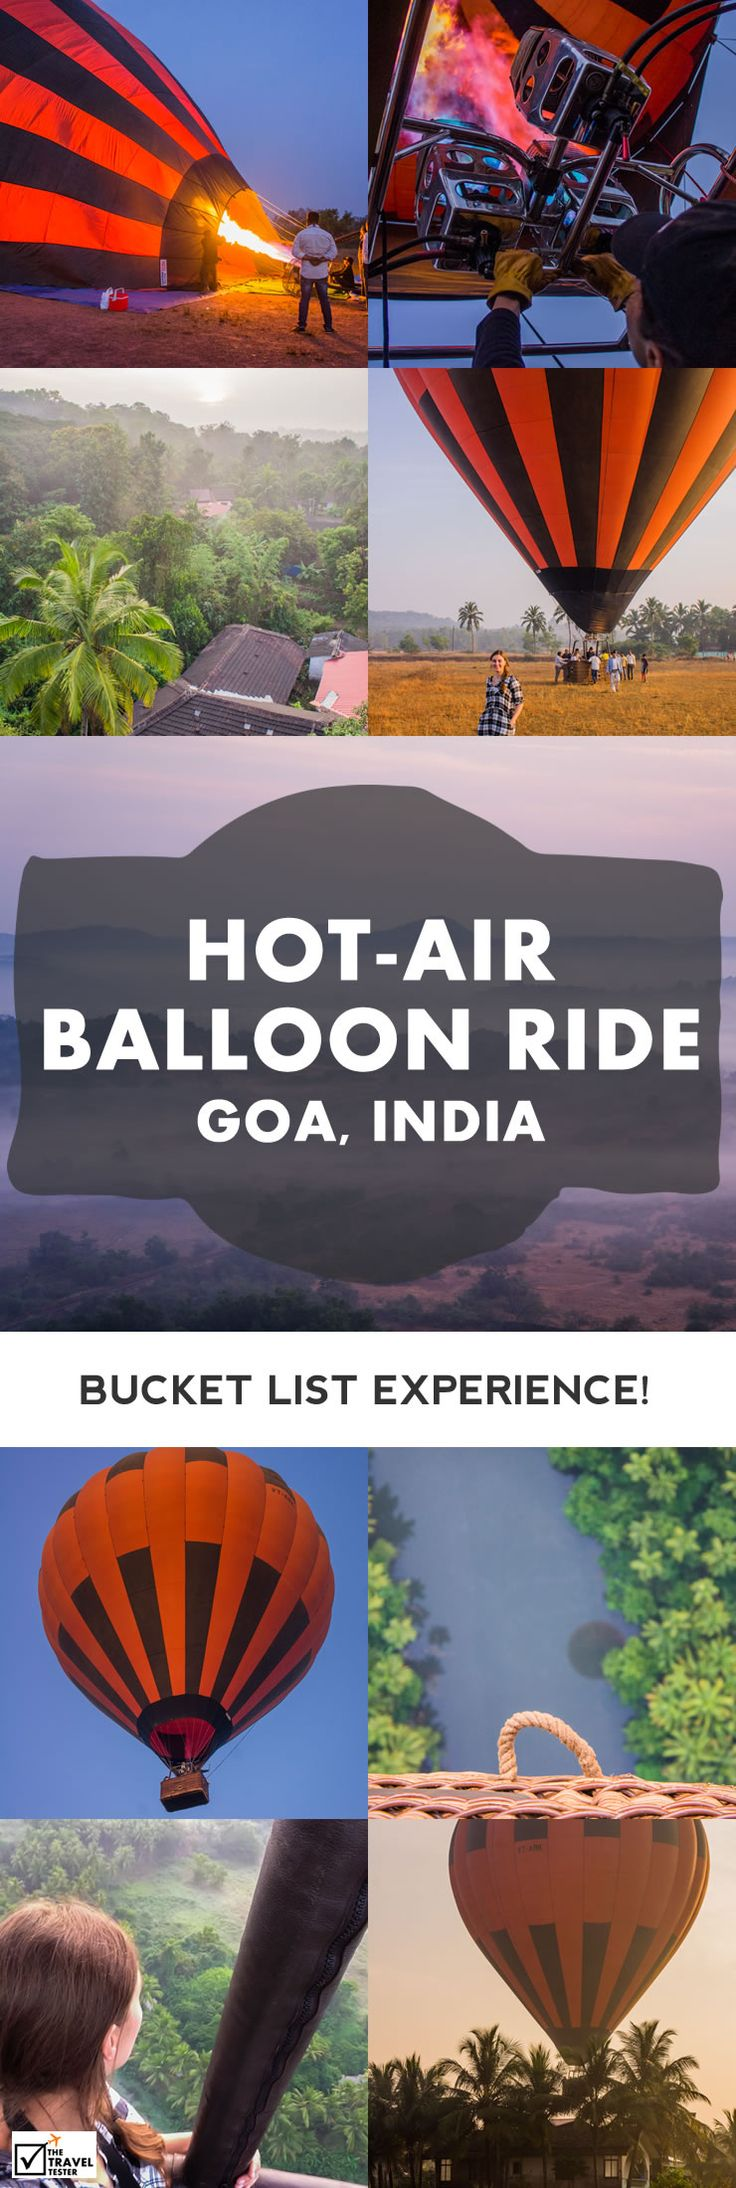 If you're looking for a bucket list experience while you are in India, then have a ride in a hot air balloon in Goa. It's something you won't forget!    The Travel Tester - Self-Development through Travel